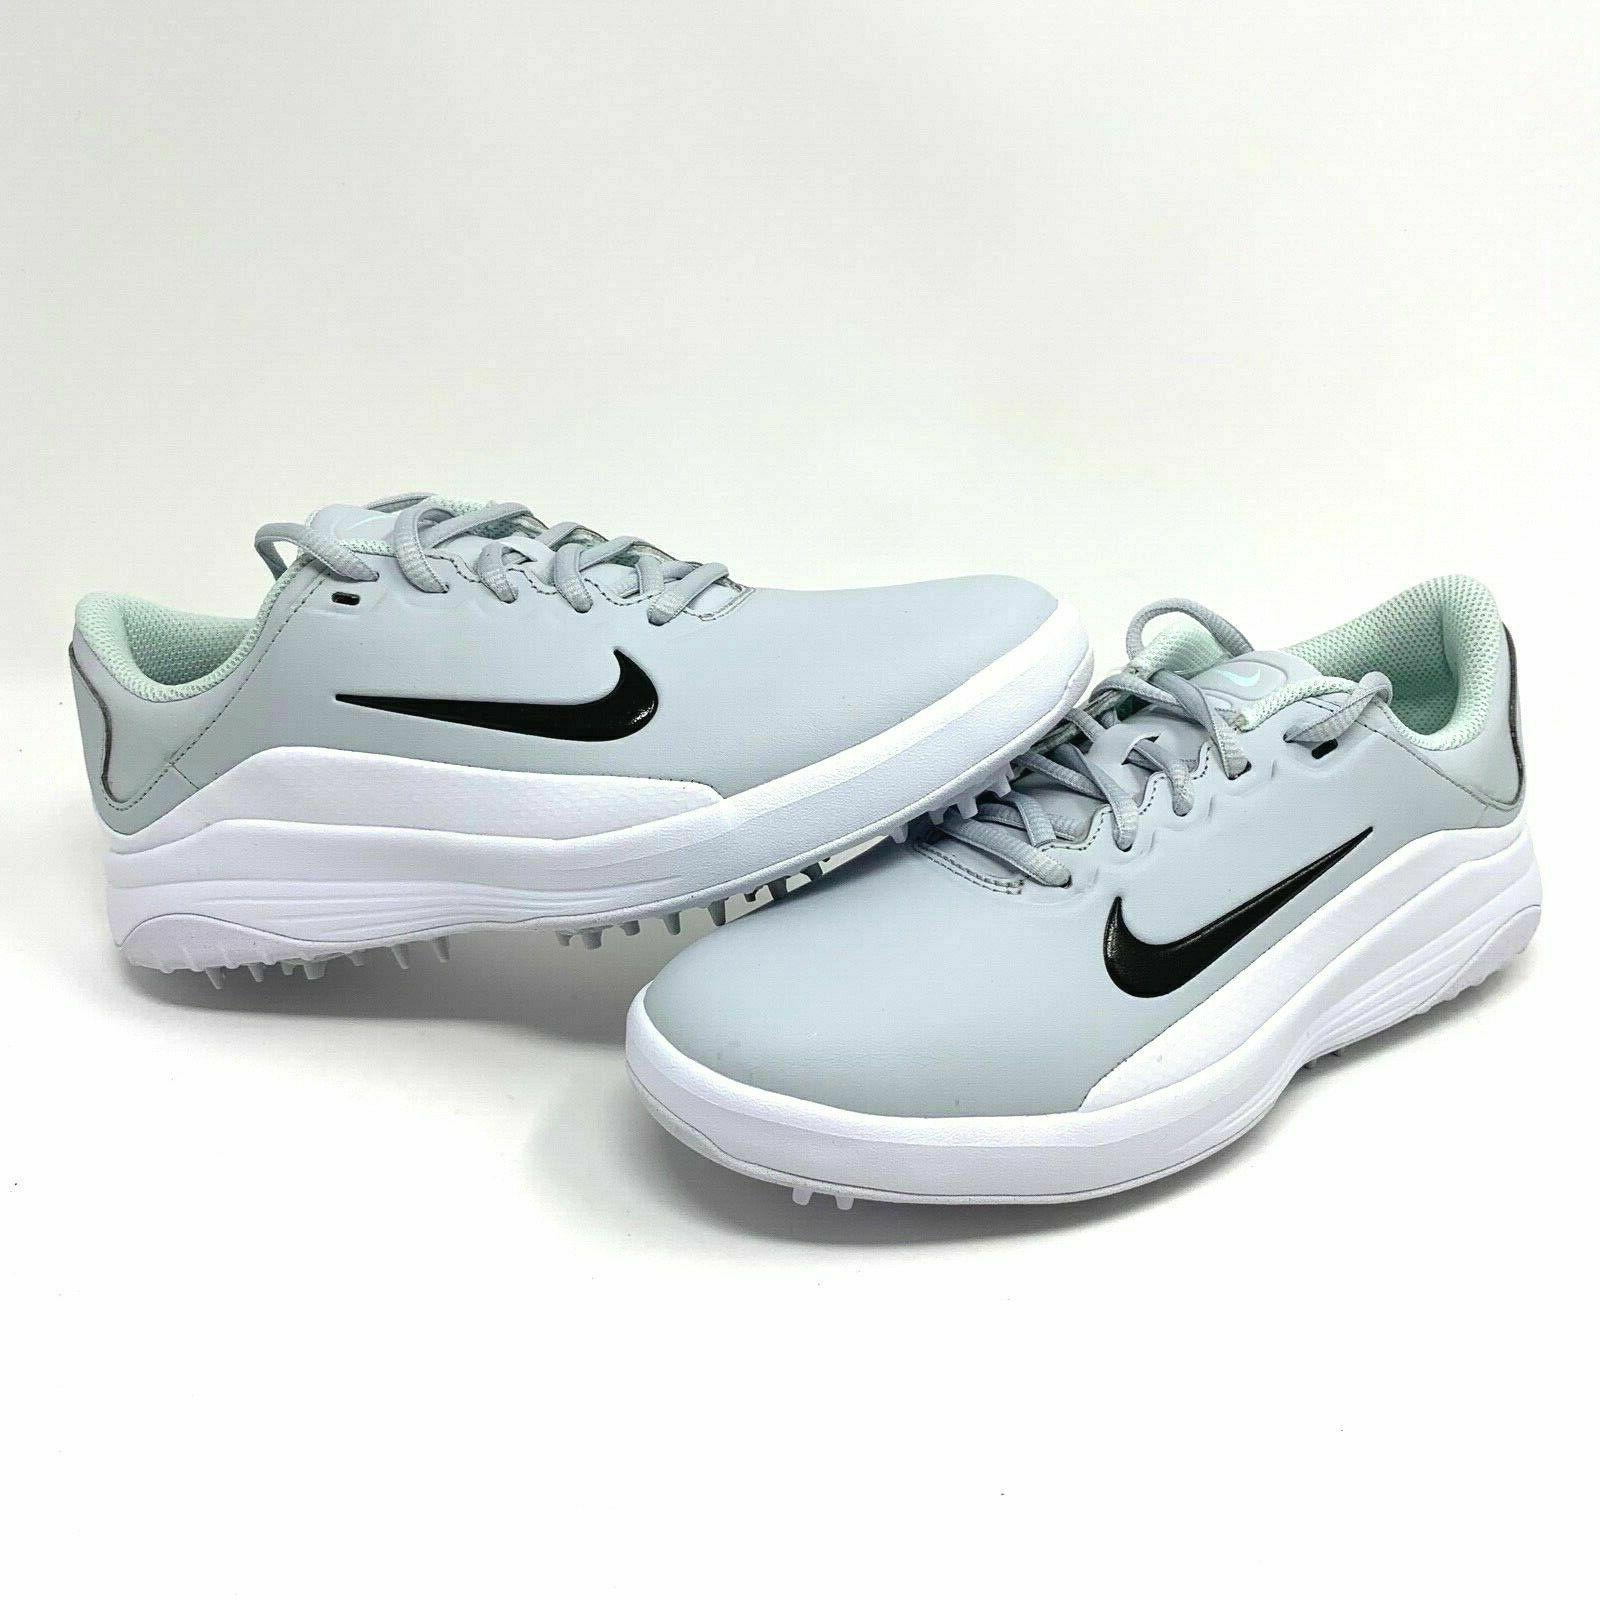 Nike Shoes Pure Platinum/Black -